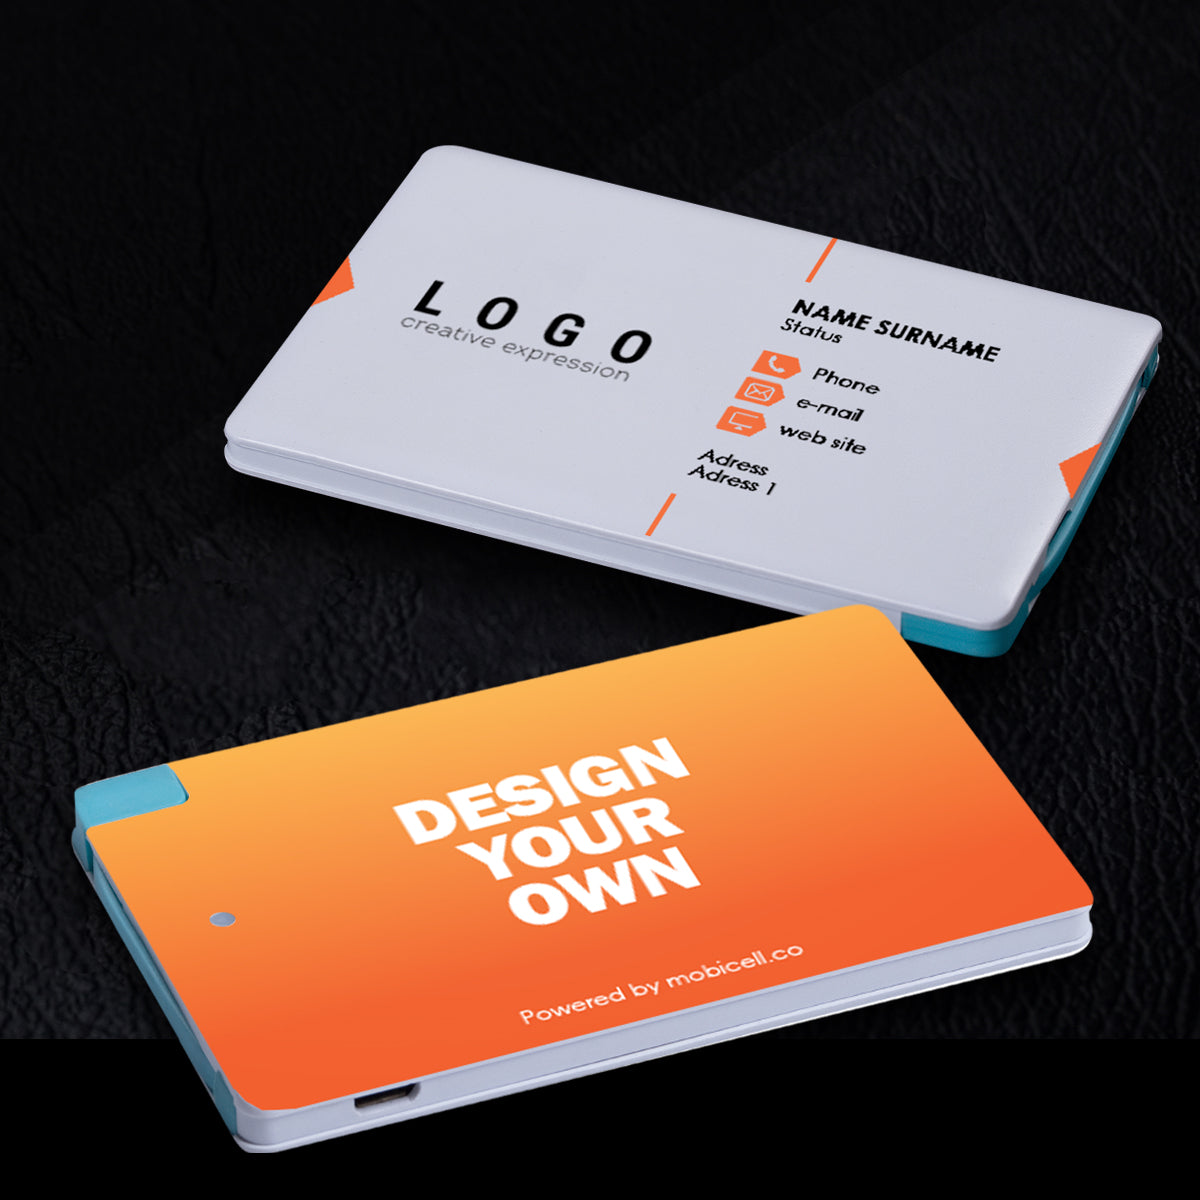 Design my own logo business cards awesome graphic library ultra thin business card power bank charger white 2500 mah rh mobicell co design my own business cards free design my own business cards software reheart Images